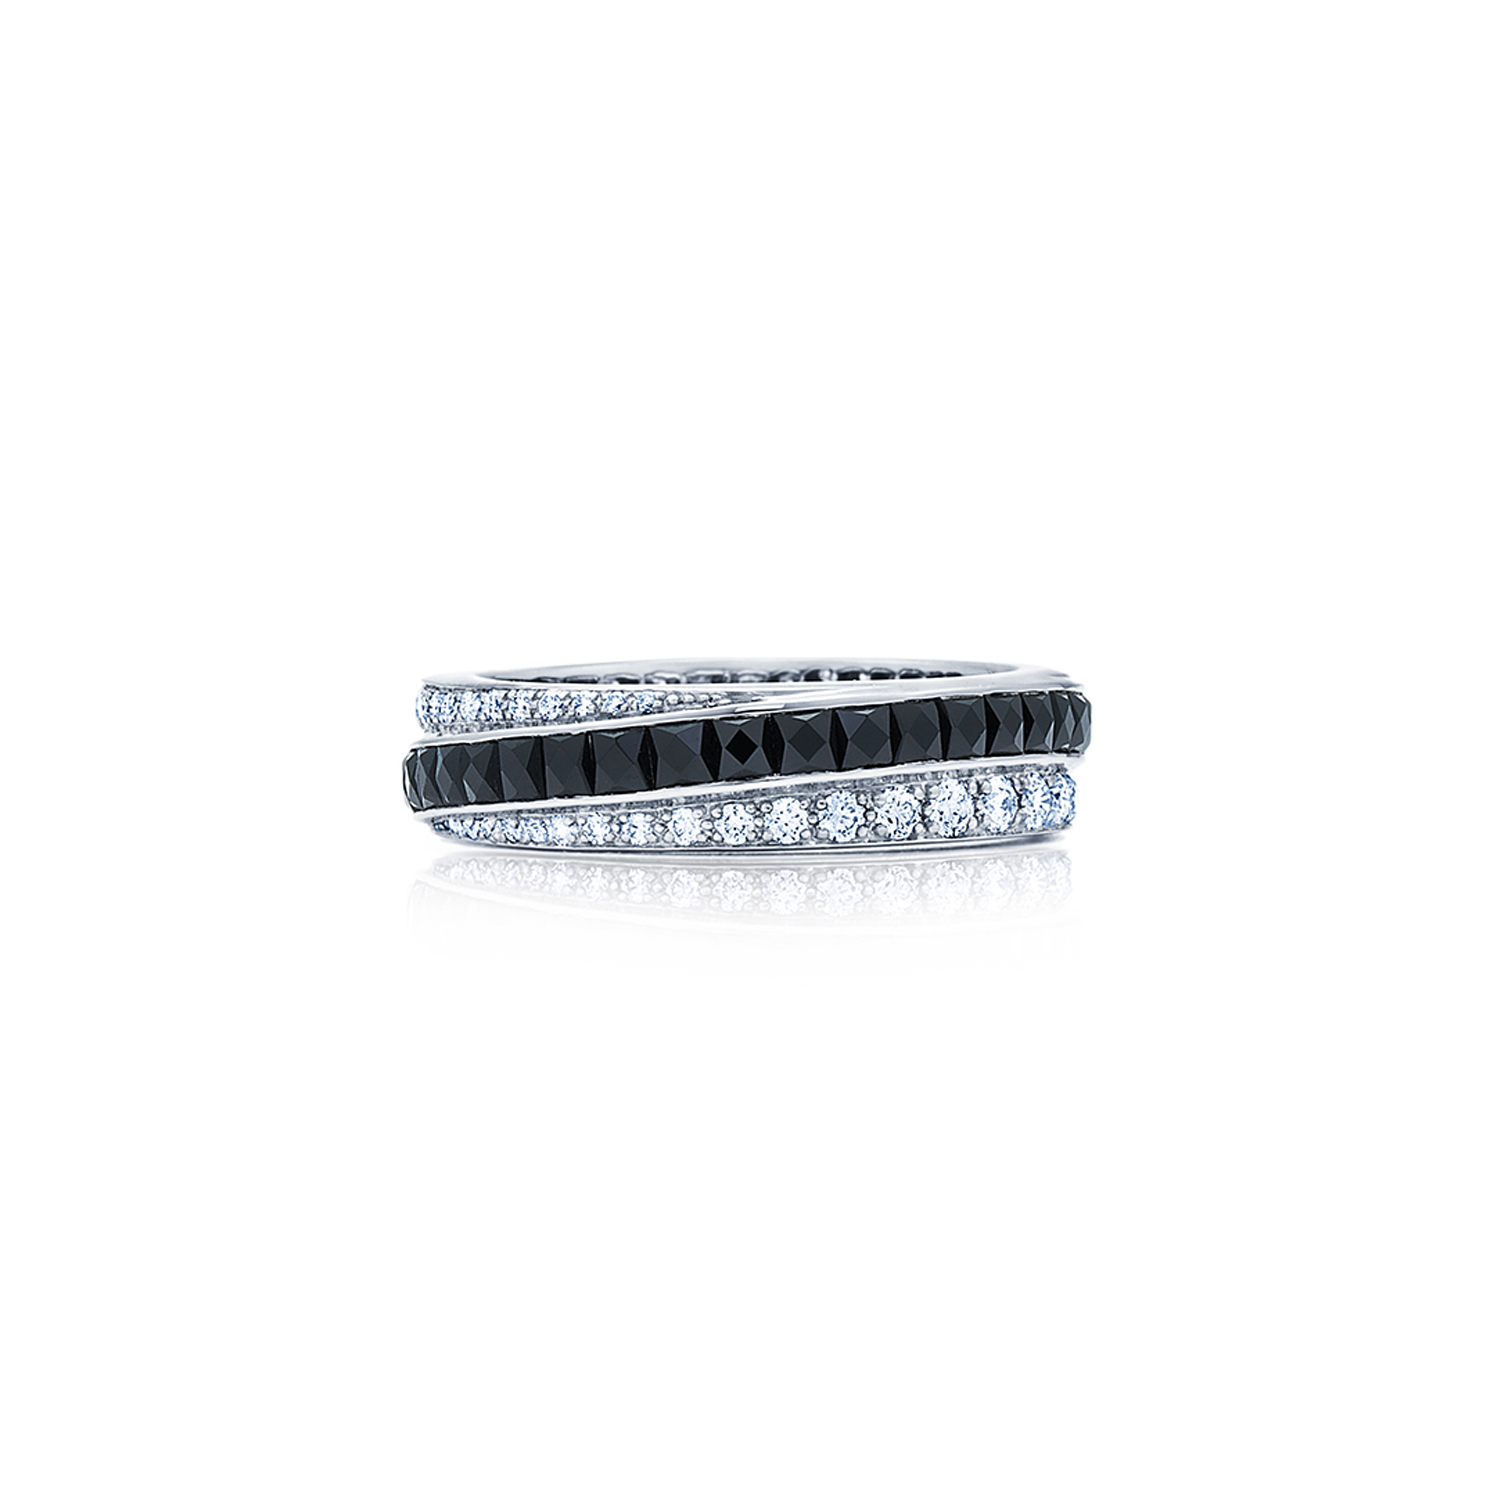 Signed Fred Leighton Diamond and Onyx Stripe Eternity Band Ring R1005-DIAONYX